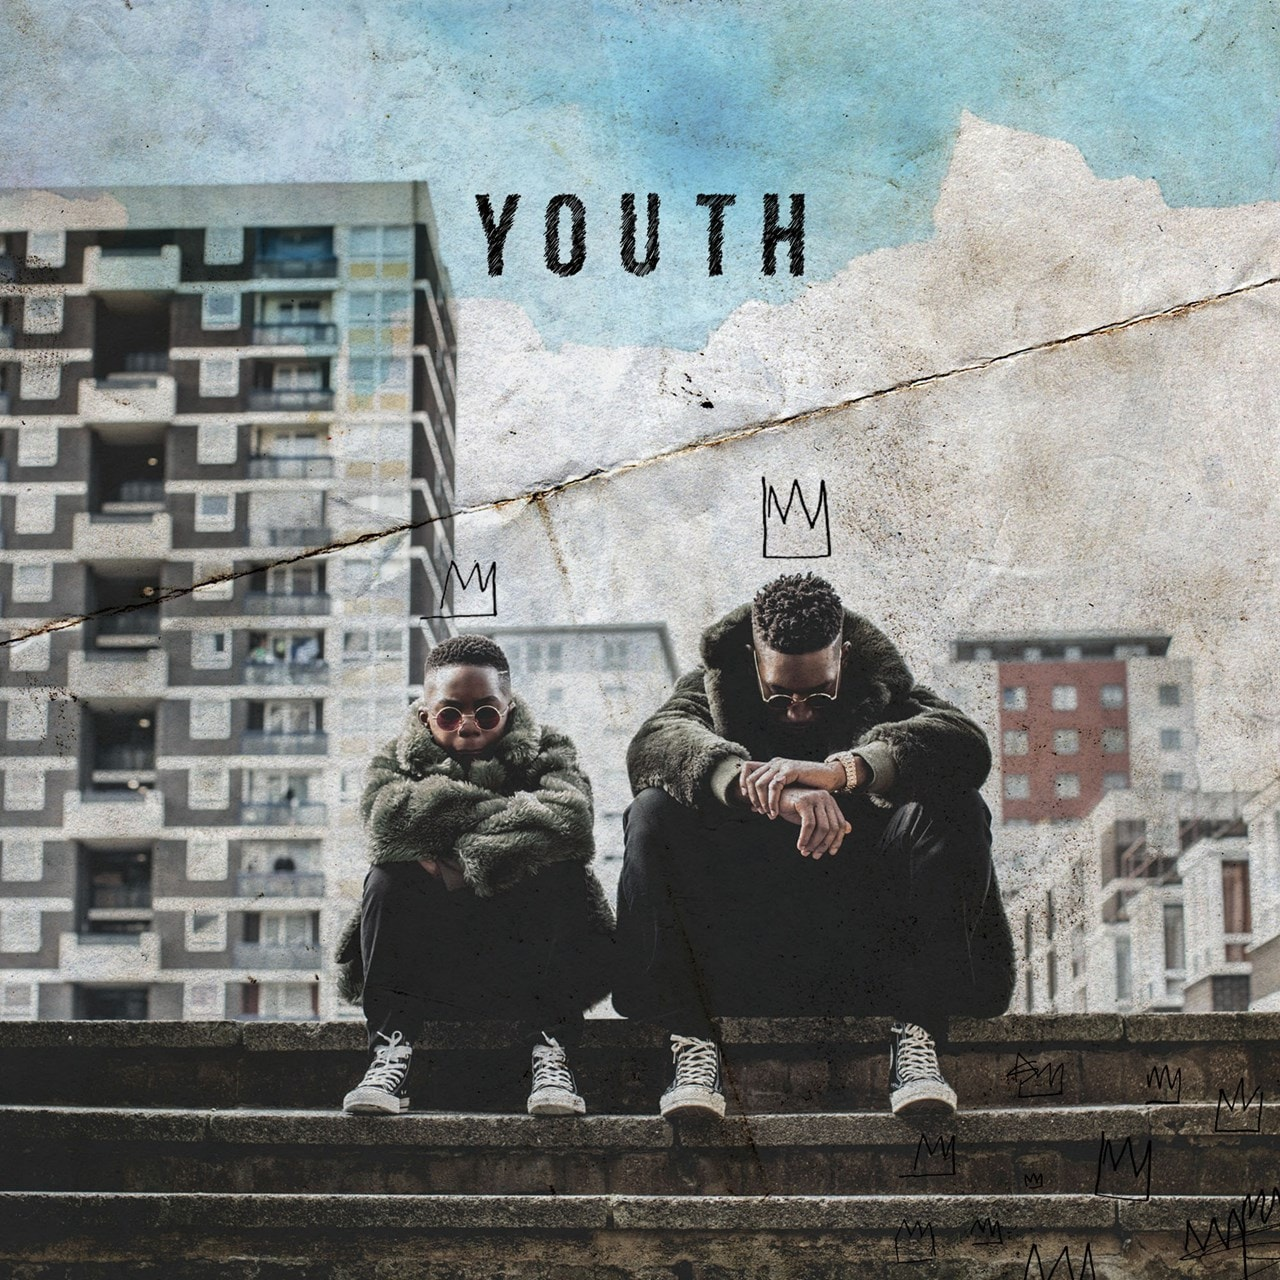 Youth - 1